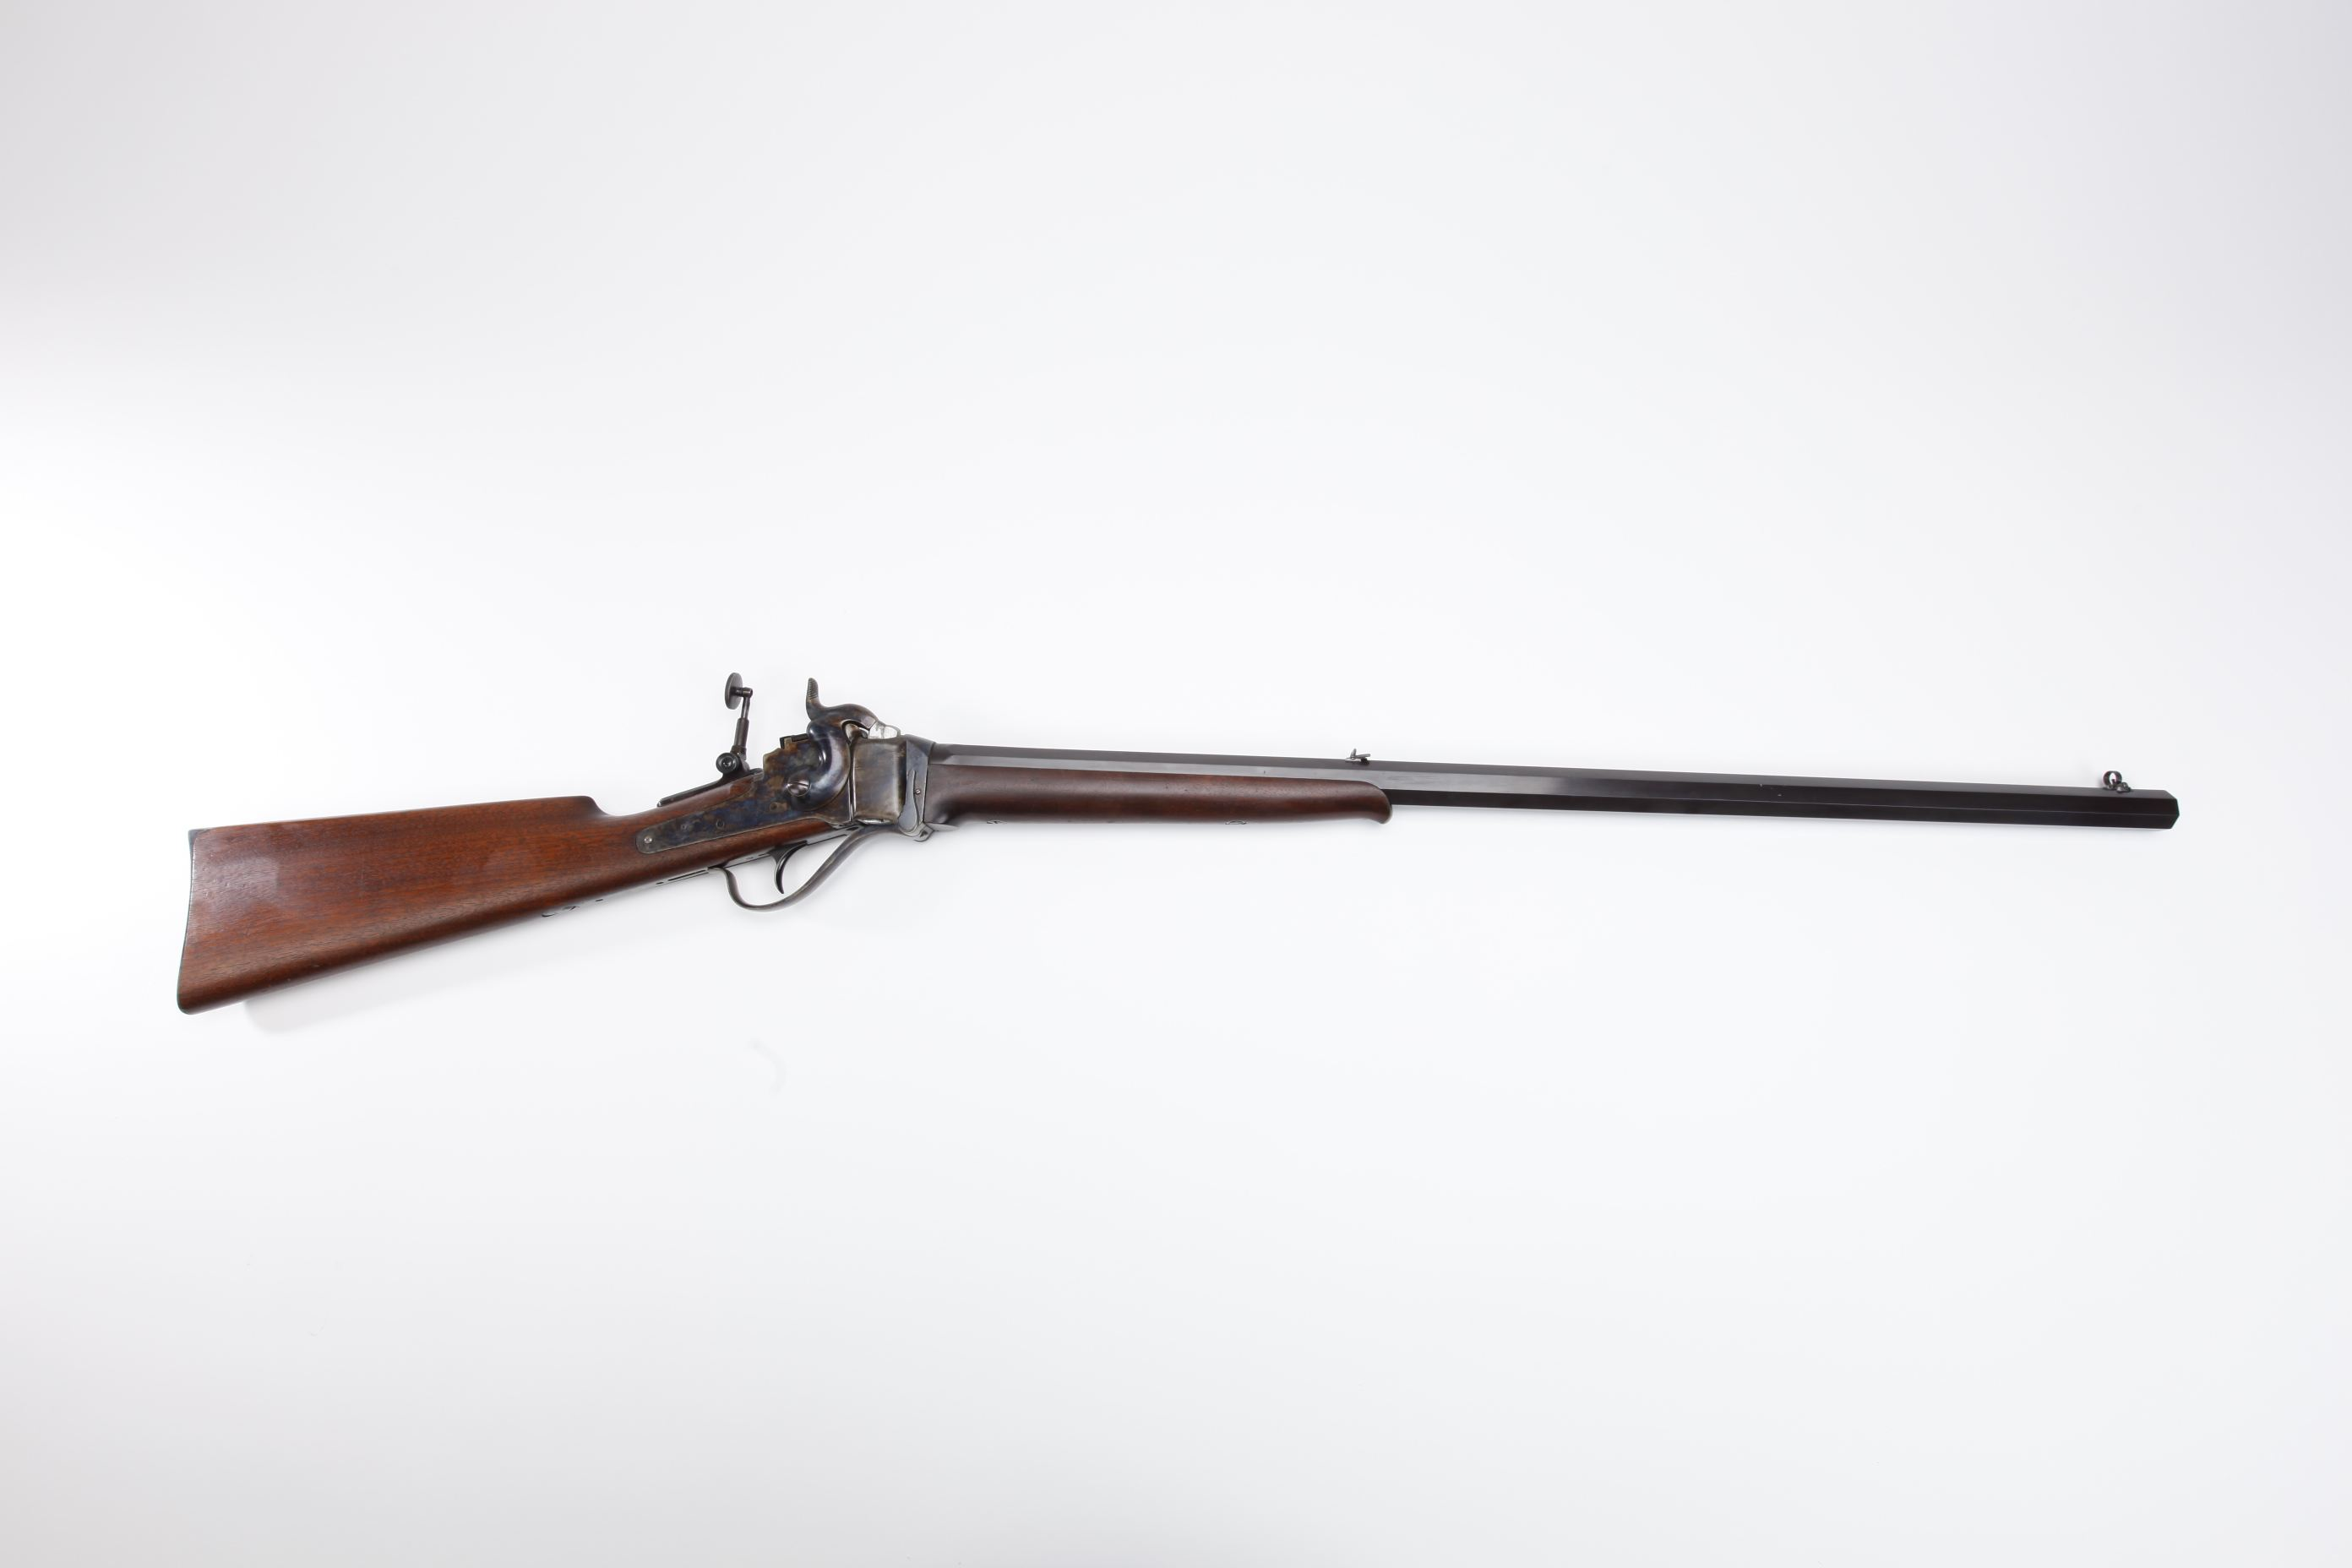 Sharps Model 1874 Creedmoor Rifle No 3 Rifle